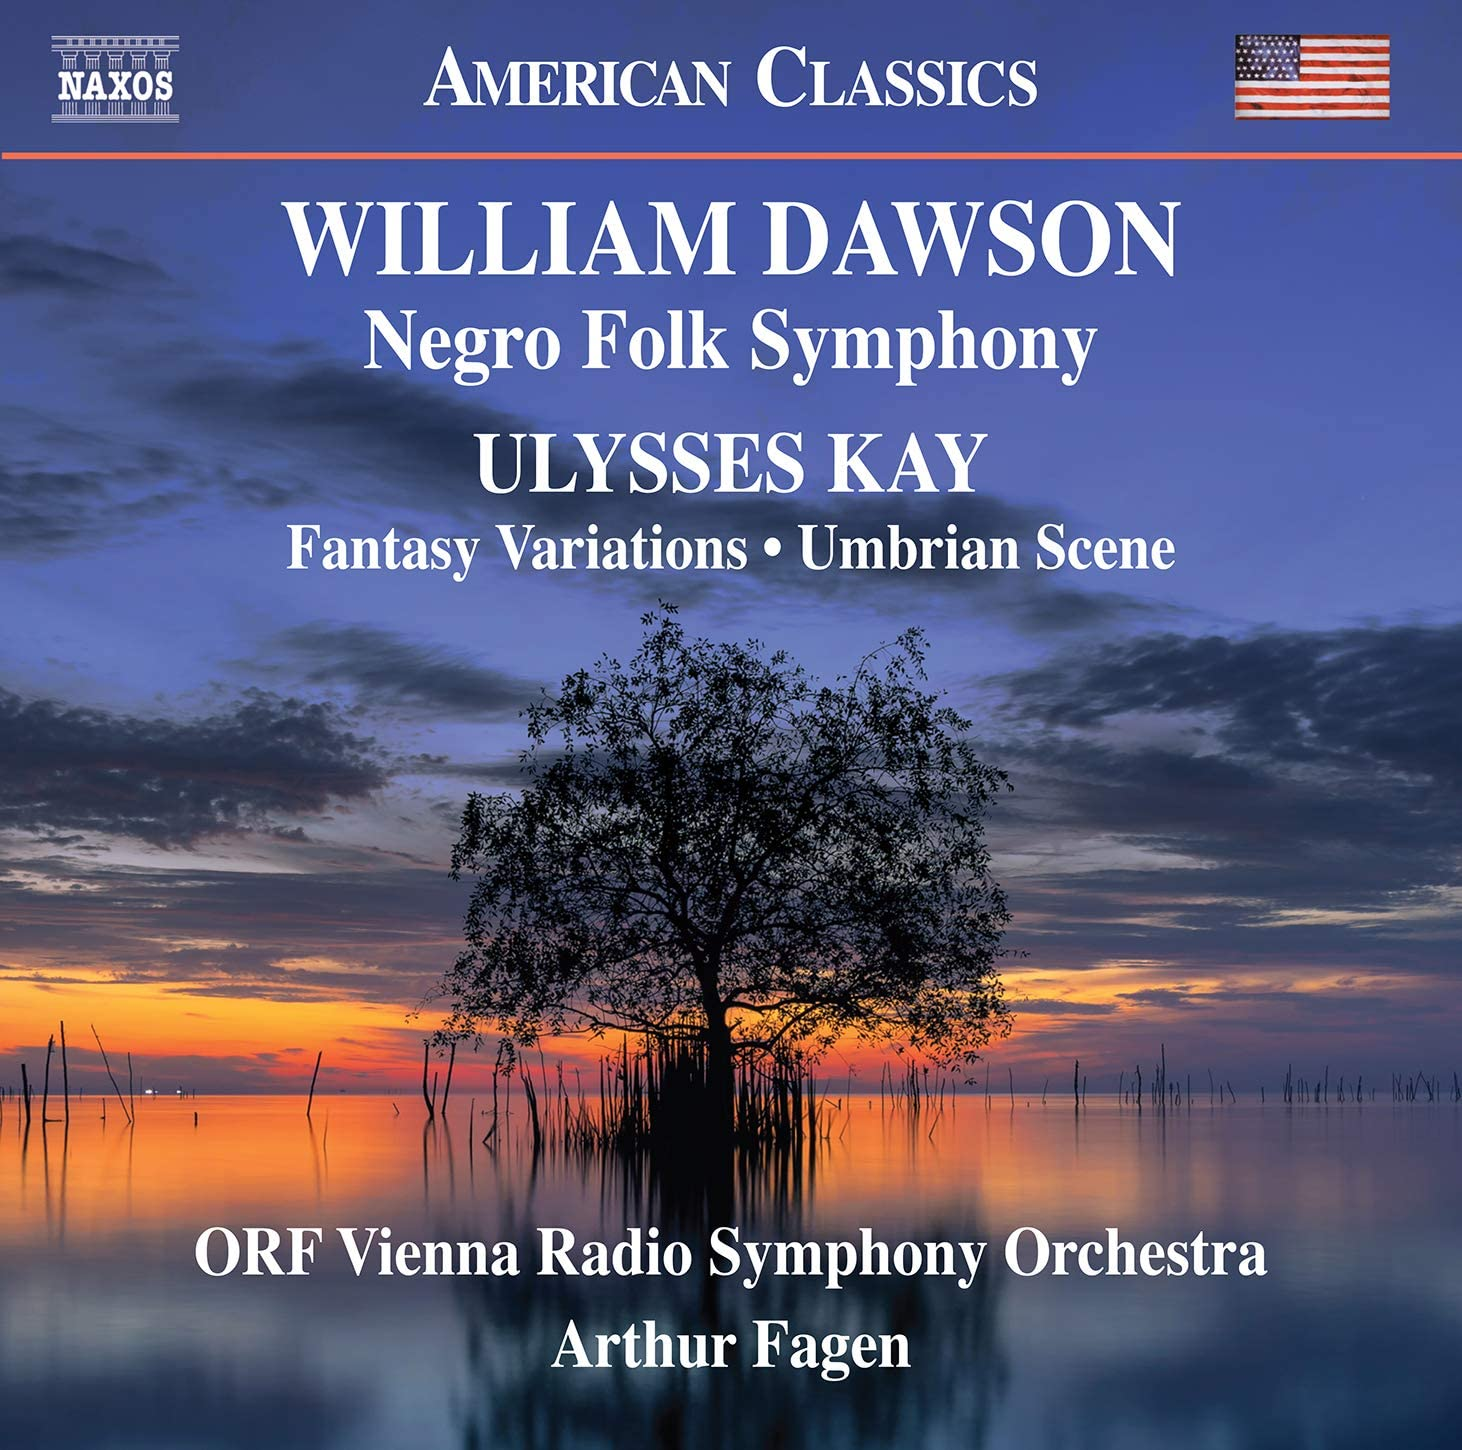 Review of DAWSON Negro Folk Symphony KAY Fantasy Variations